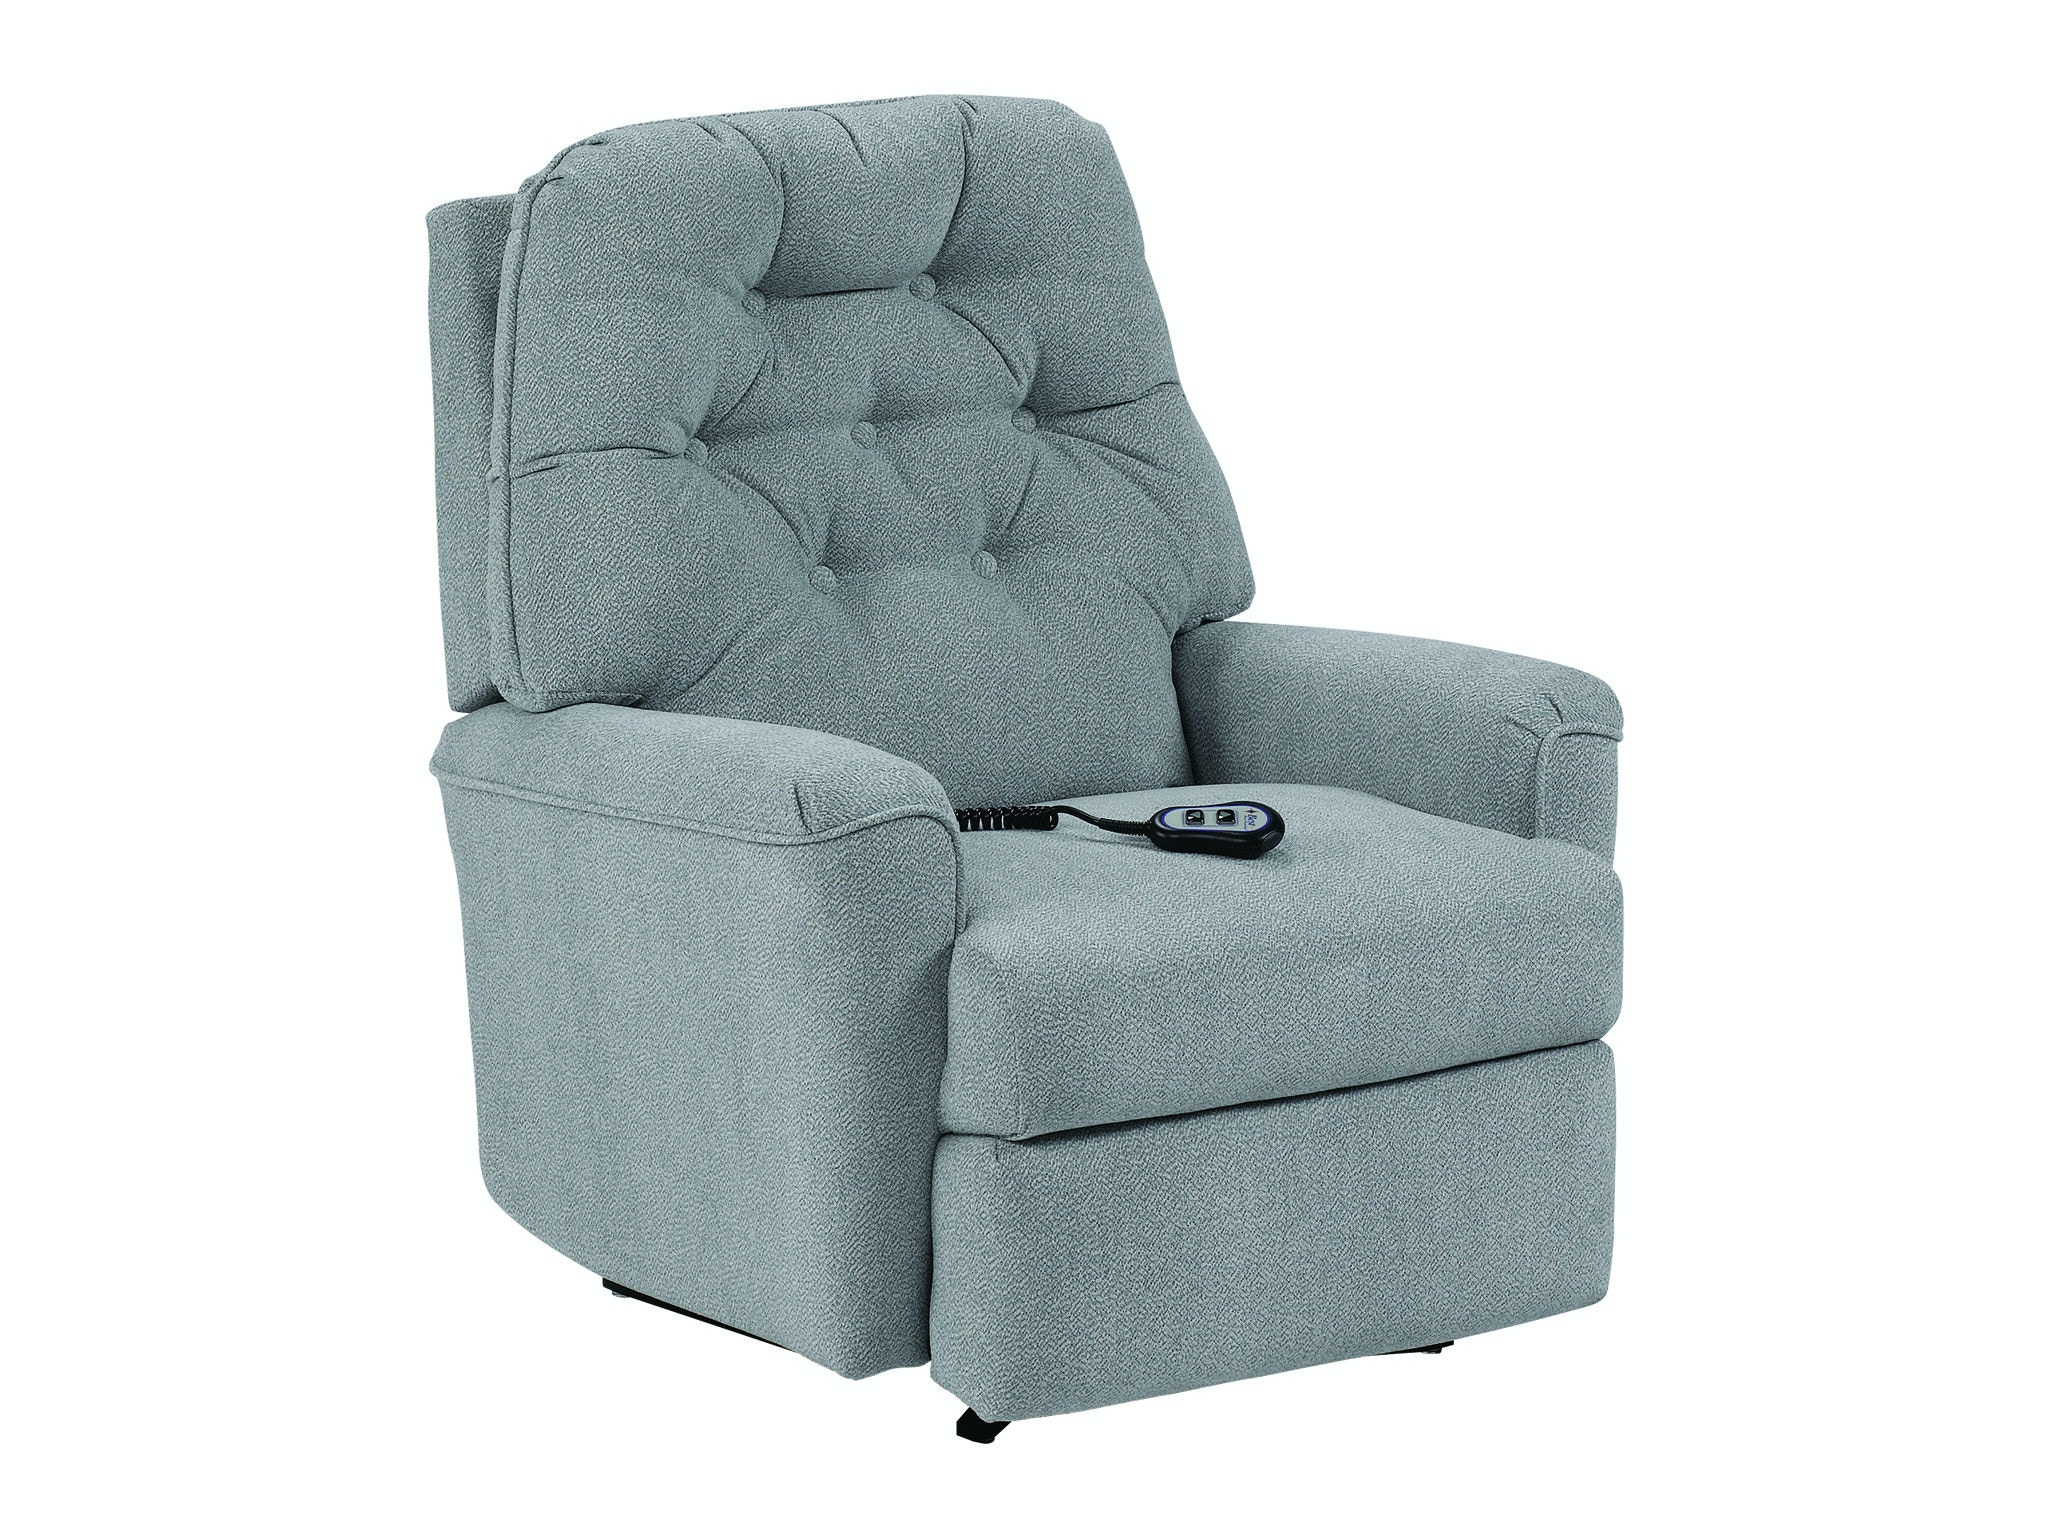 Awesome Best Home Furnishings Swivel Rocker Recliner 1AW49